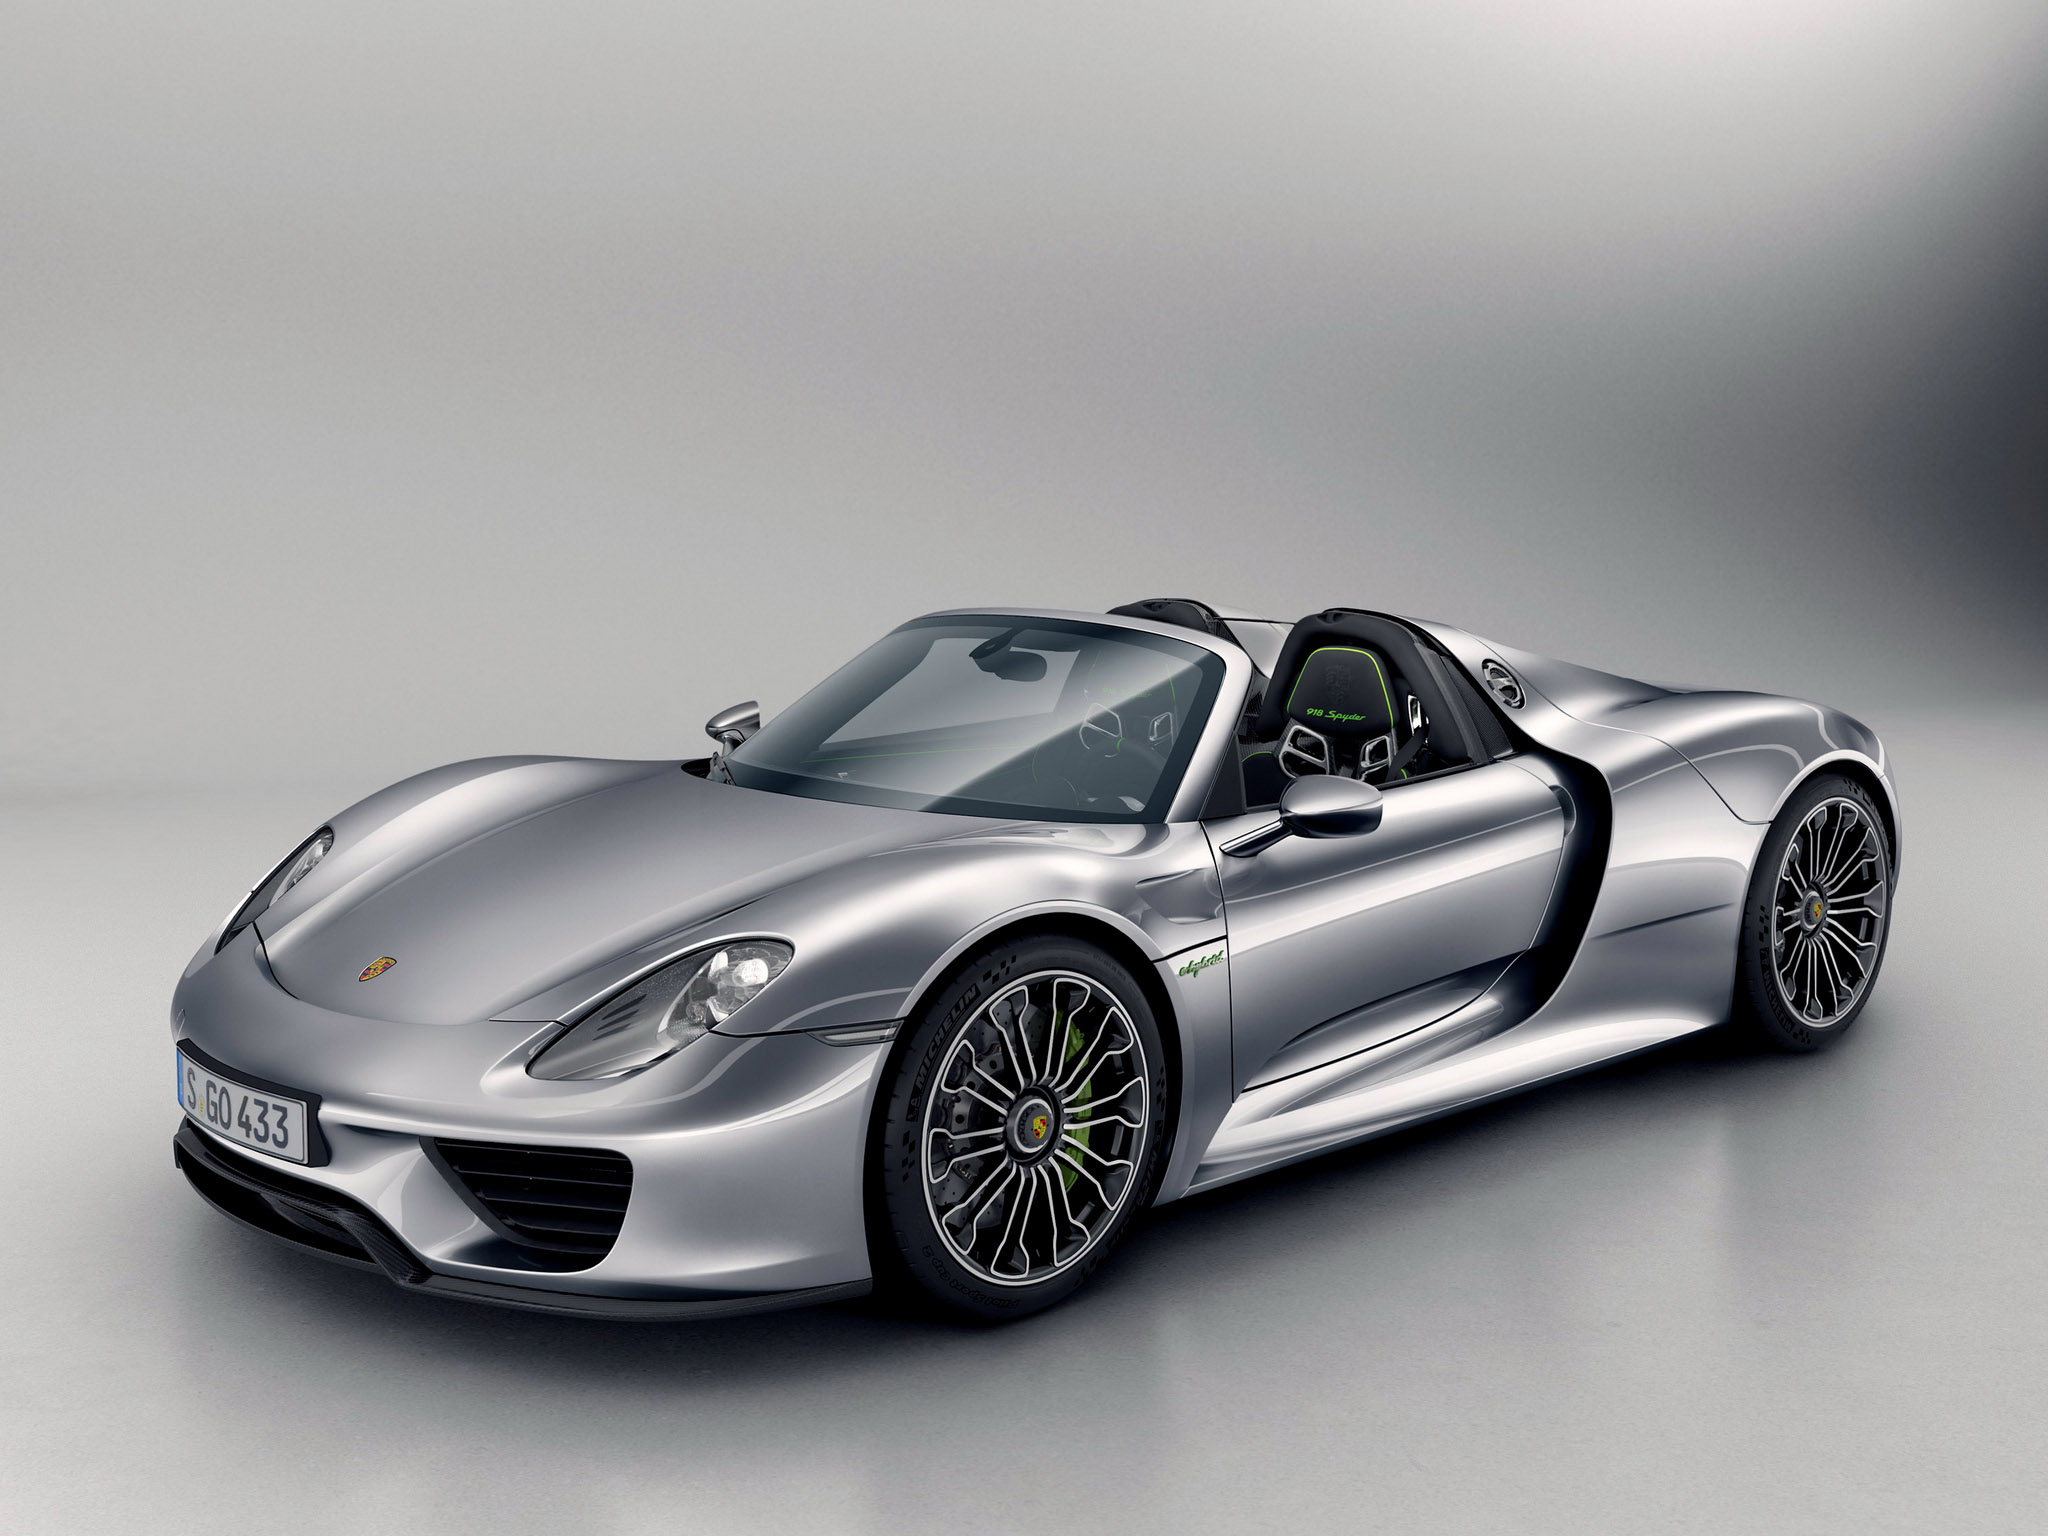 2014 Porsche 918 Spyder supercar h wallpaper background